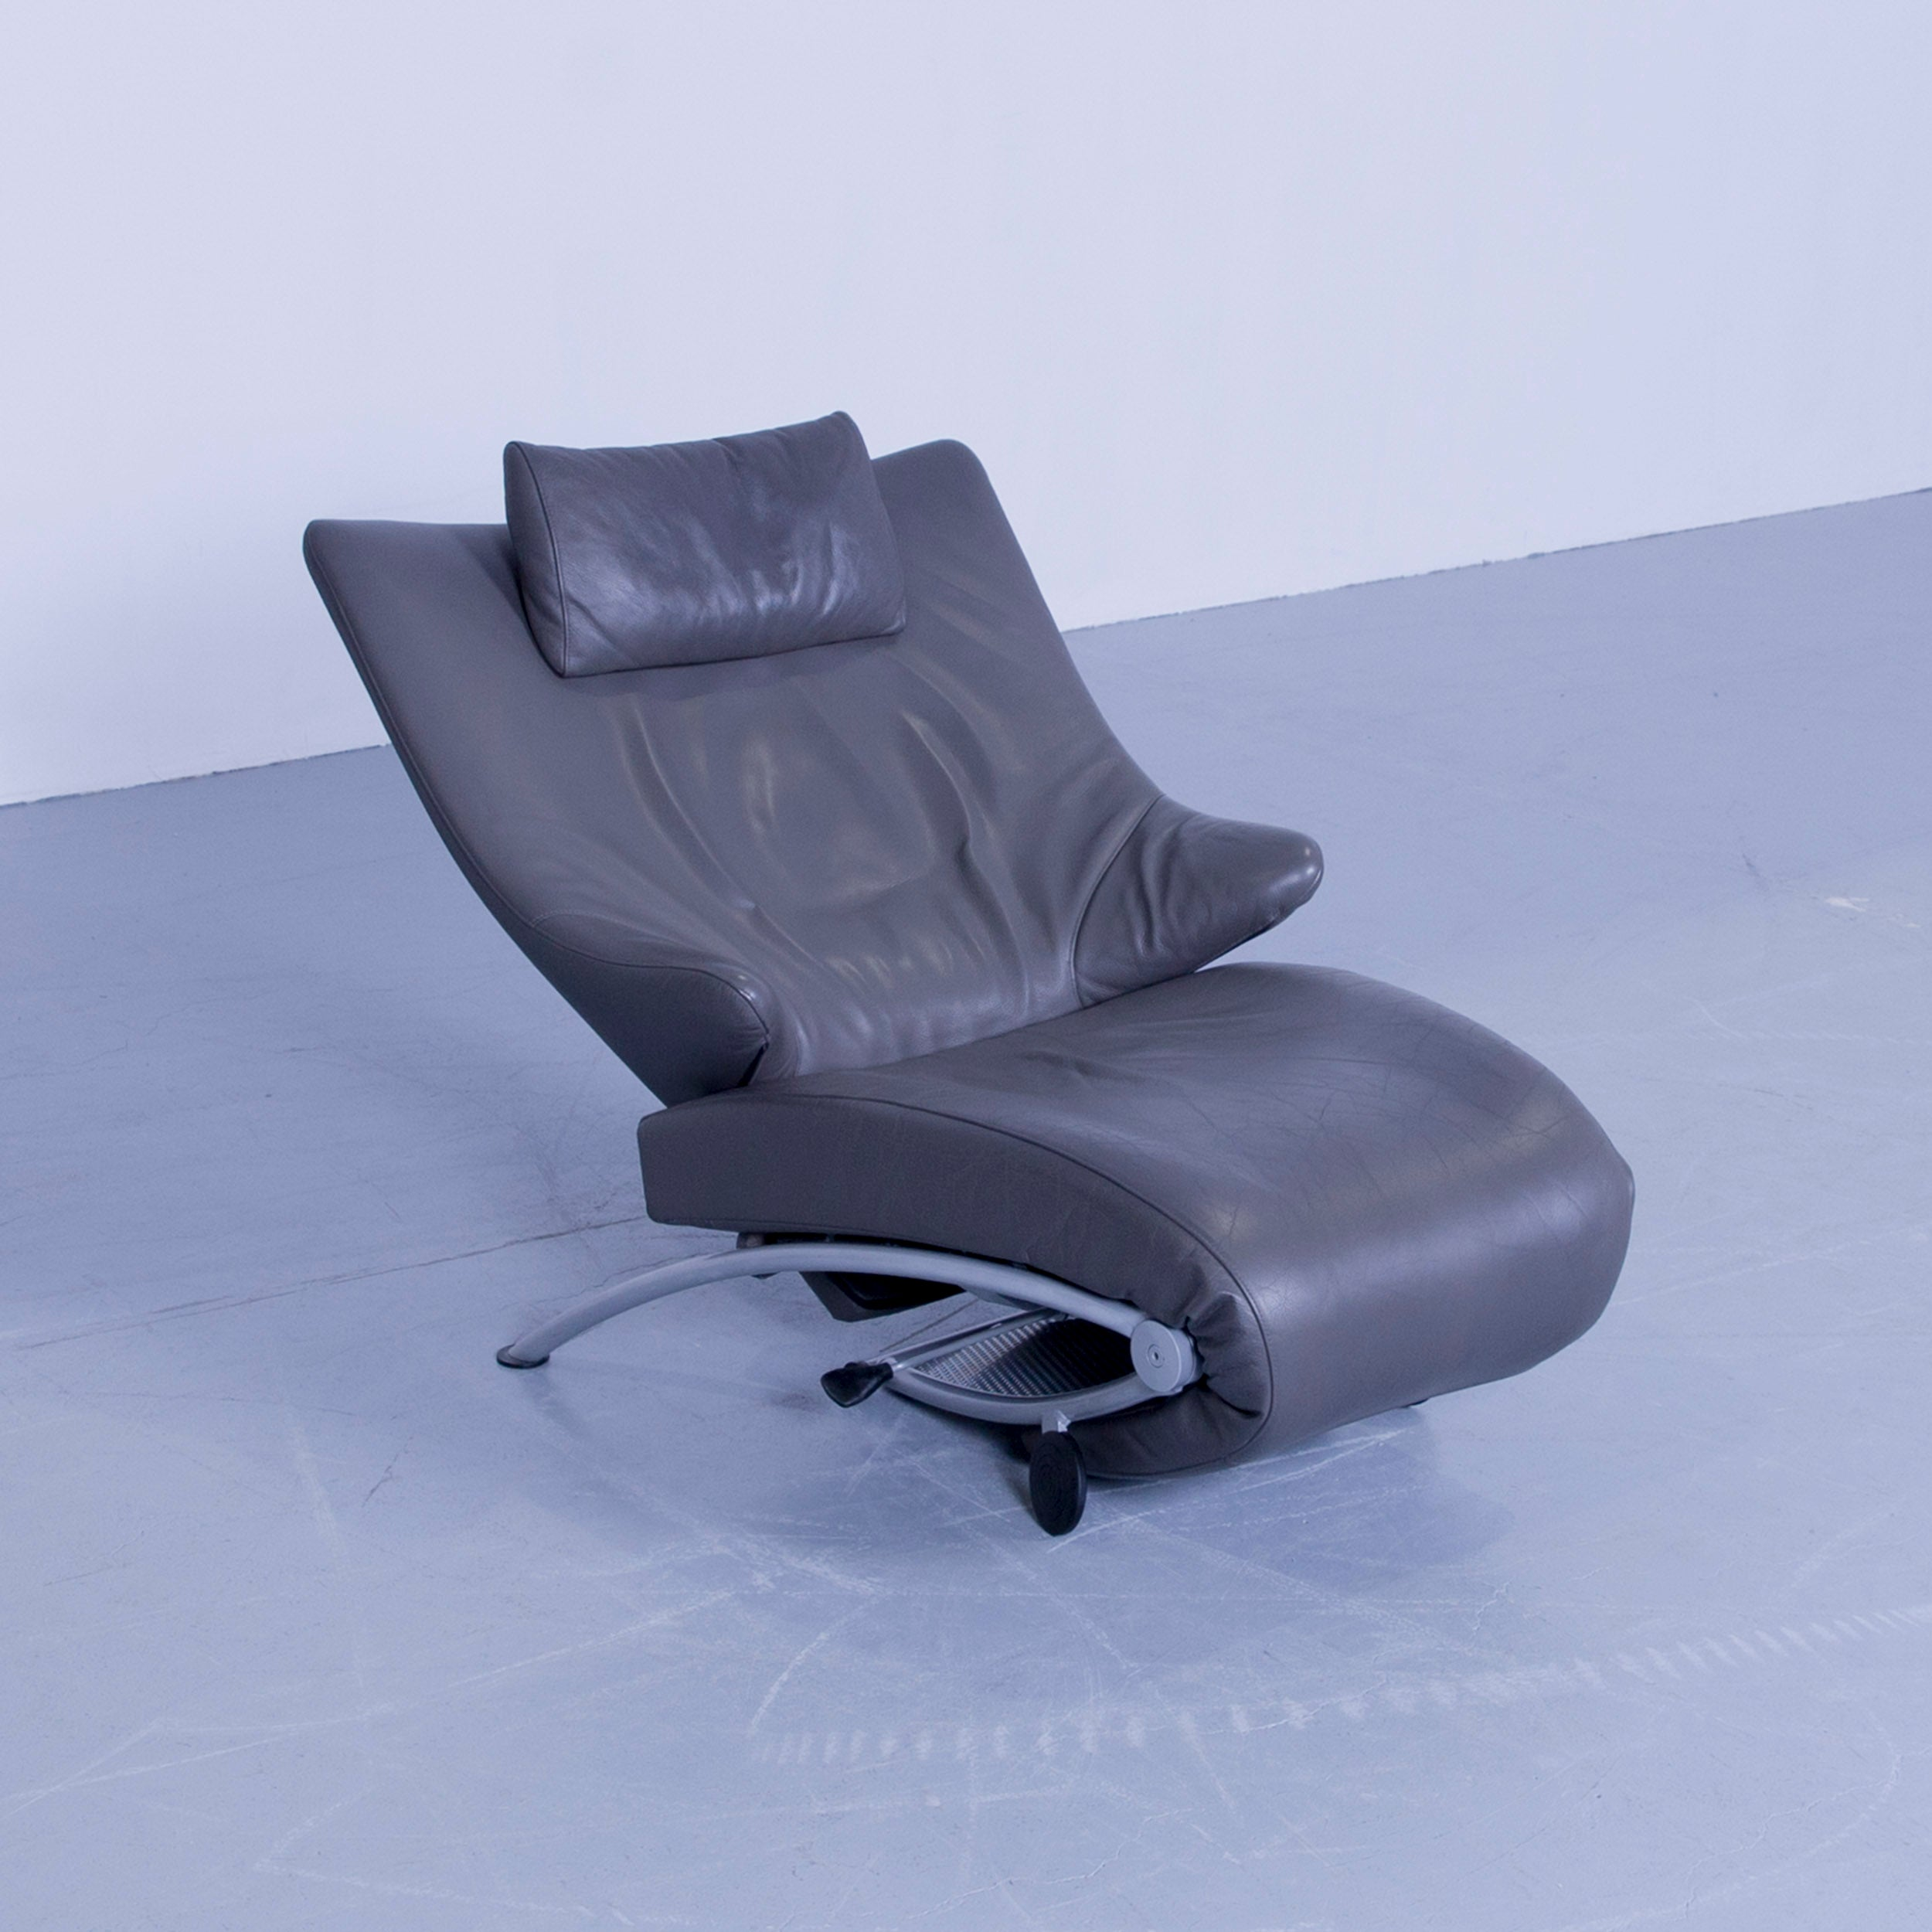 Egg Chair Gebraucht Wk Wohnen Solo 699 Designer Chair Leather Grey Function Couch Modern